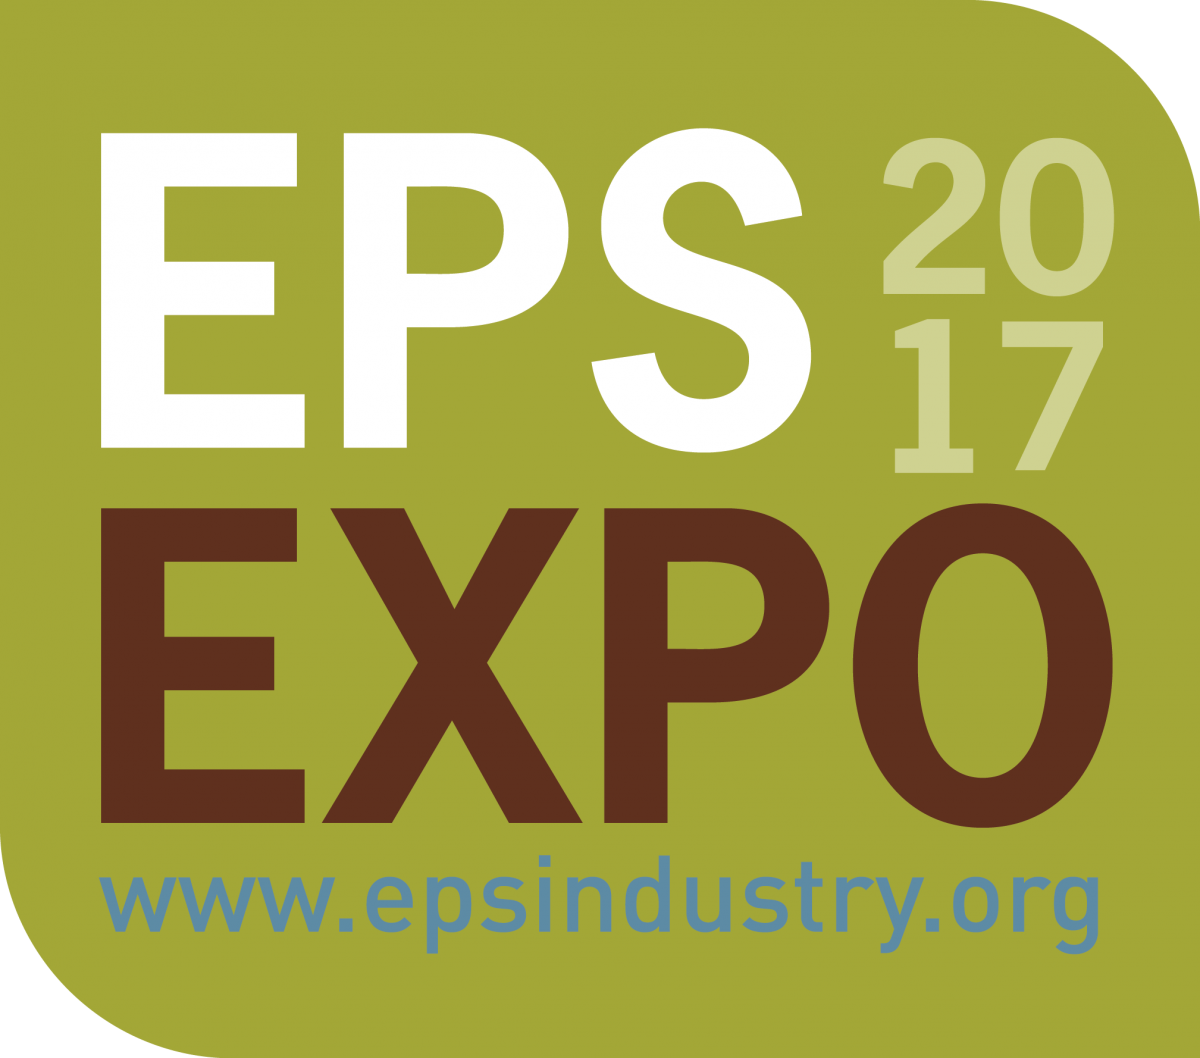 Industry Conferences Eps Industry Alliance